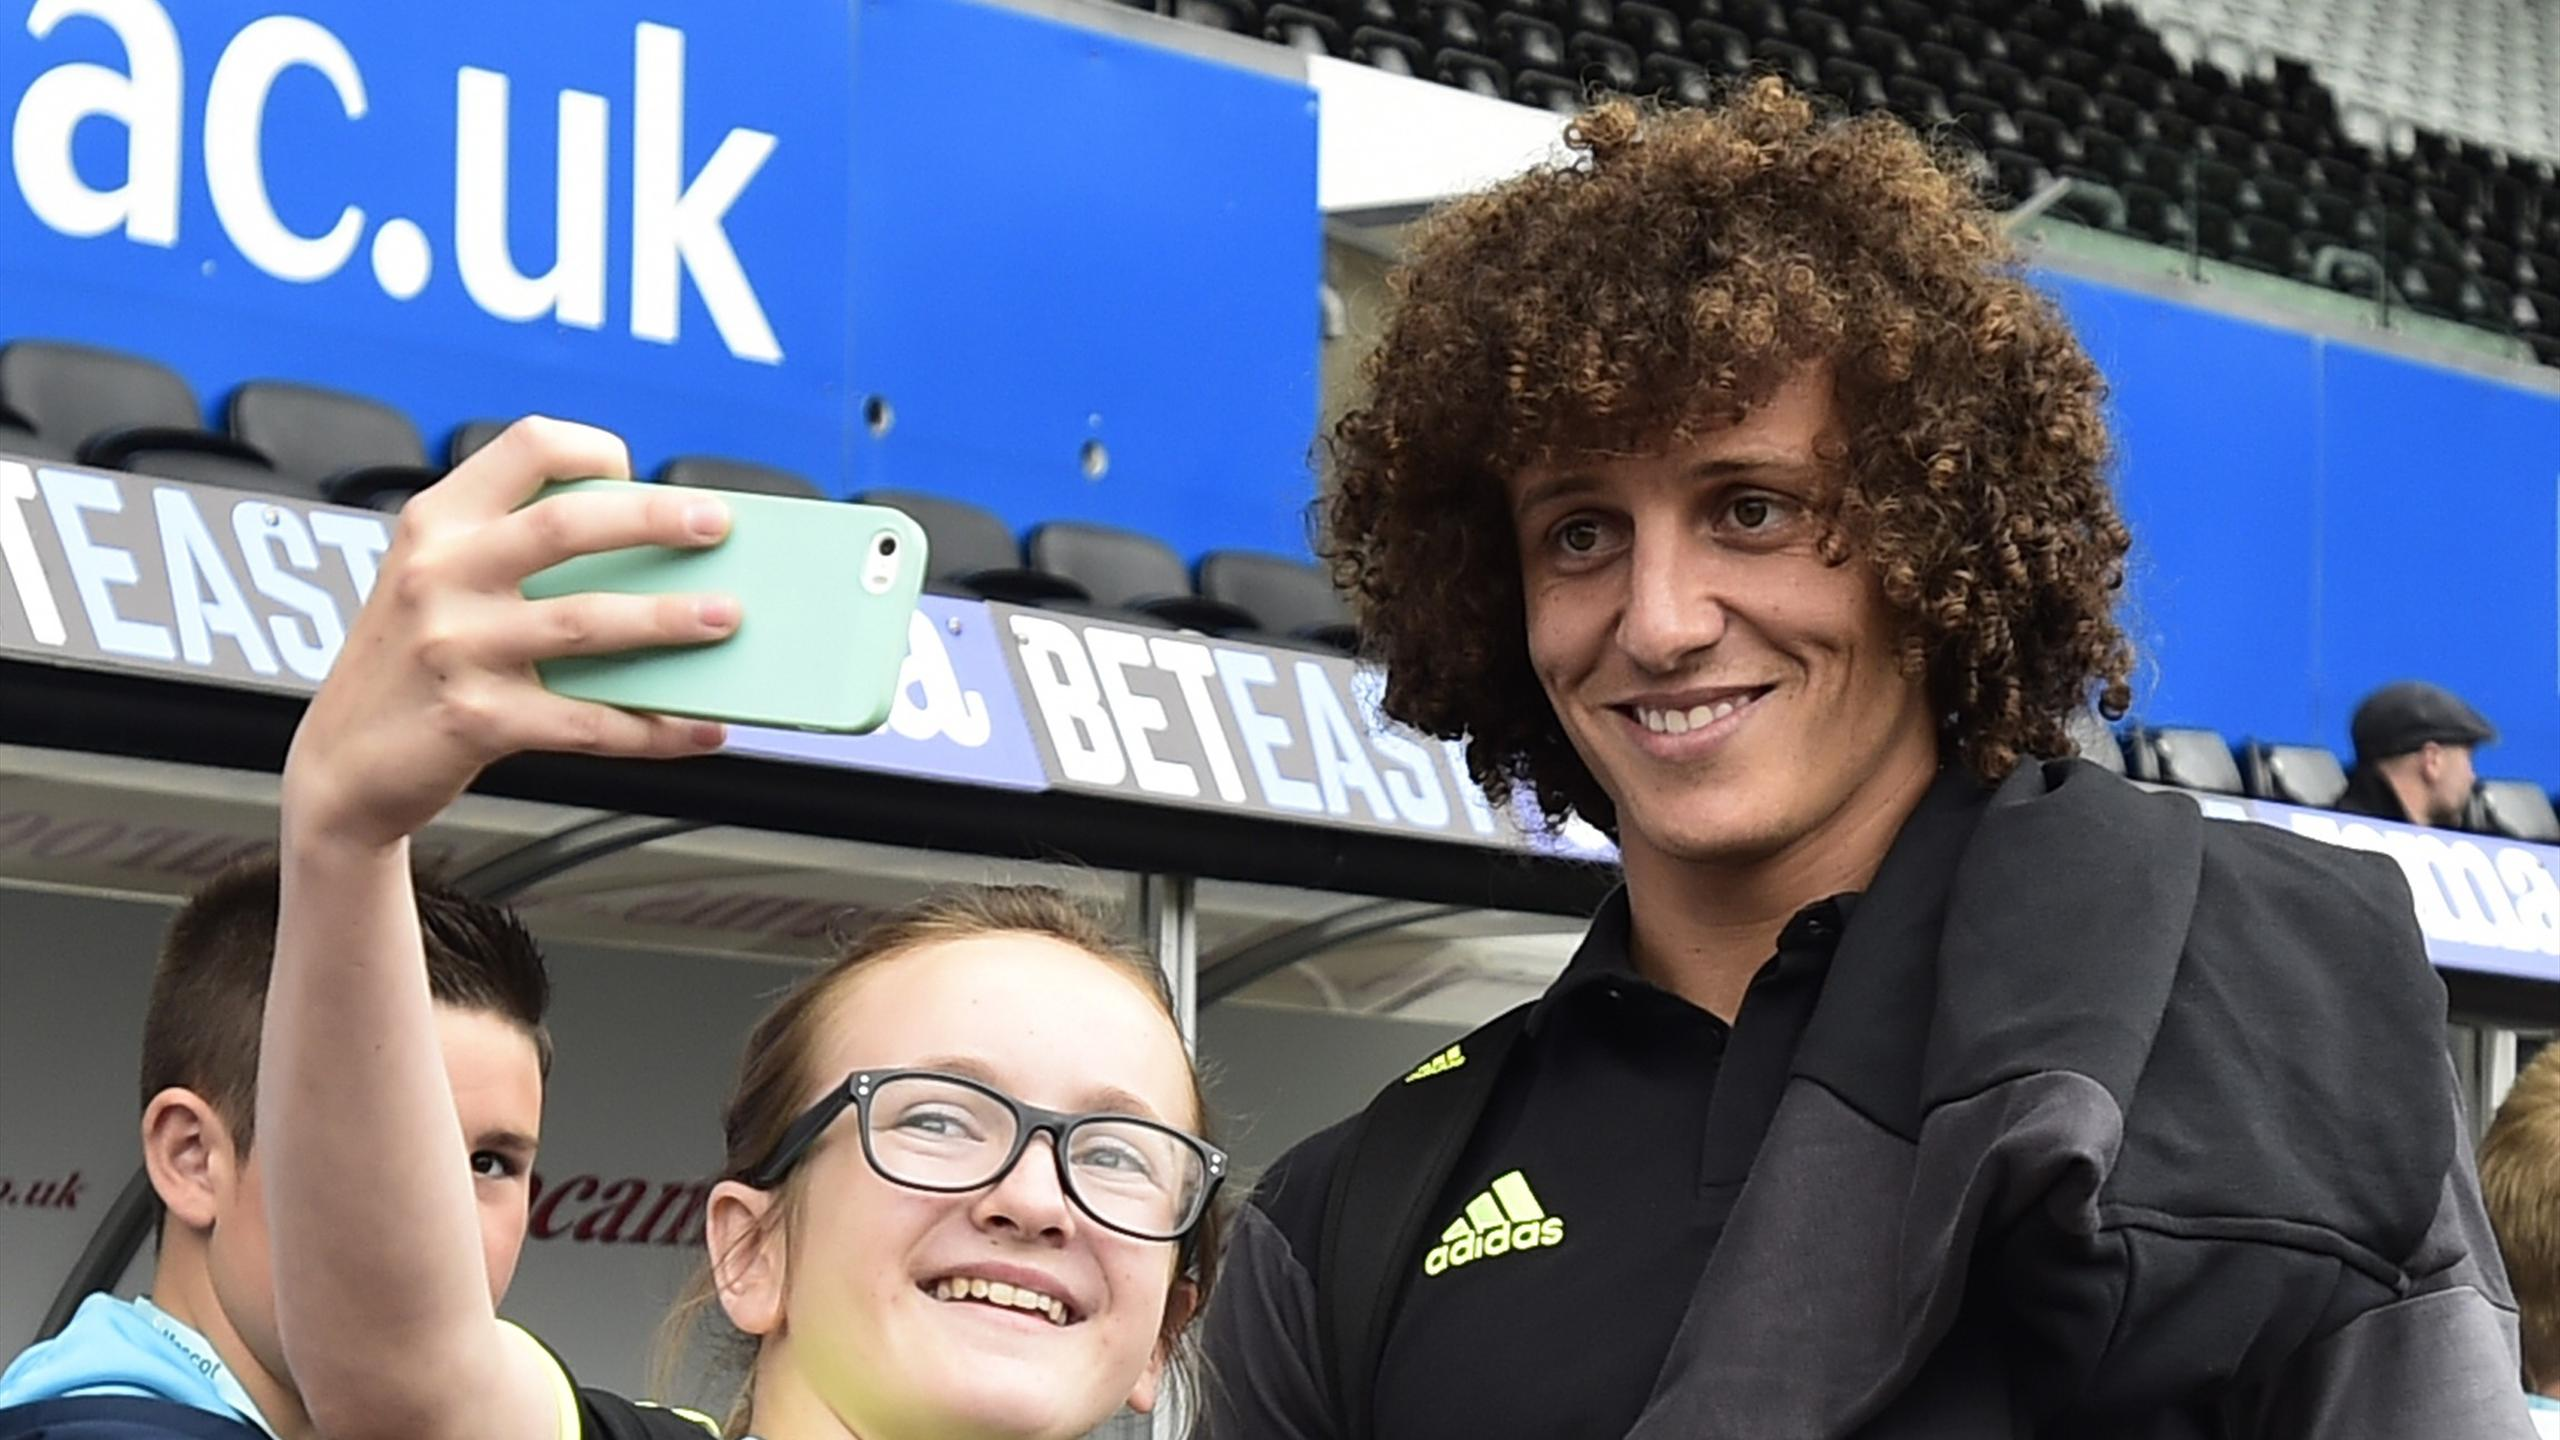 Chelsea's David Luiz poses for a picture with fans before the match